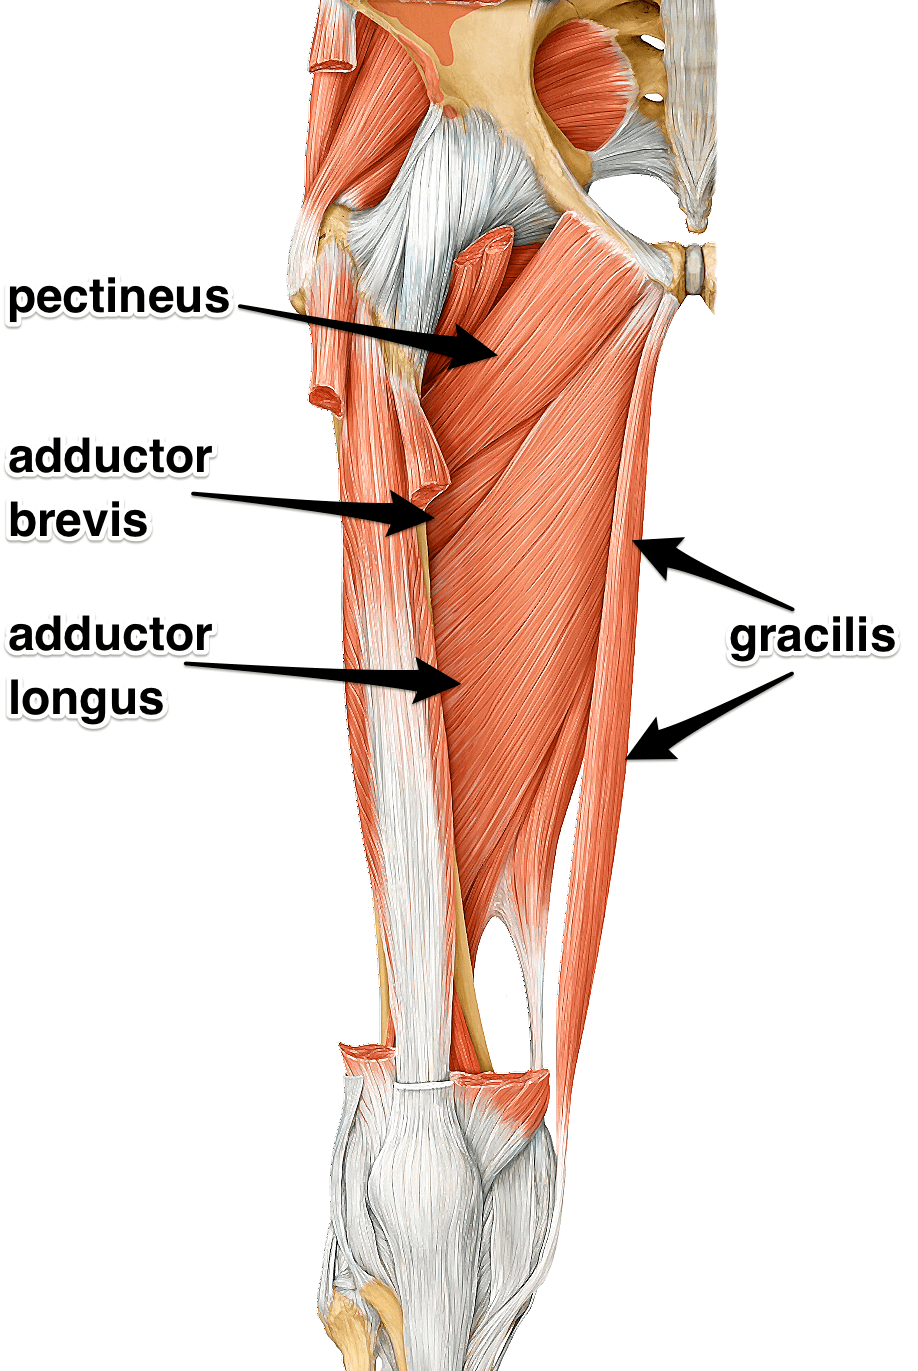 adductors-group-label.png